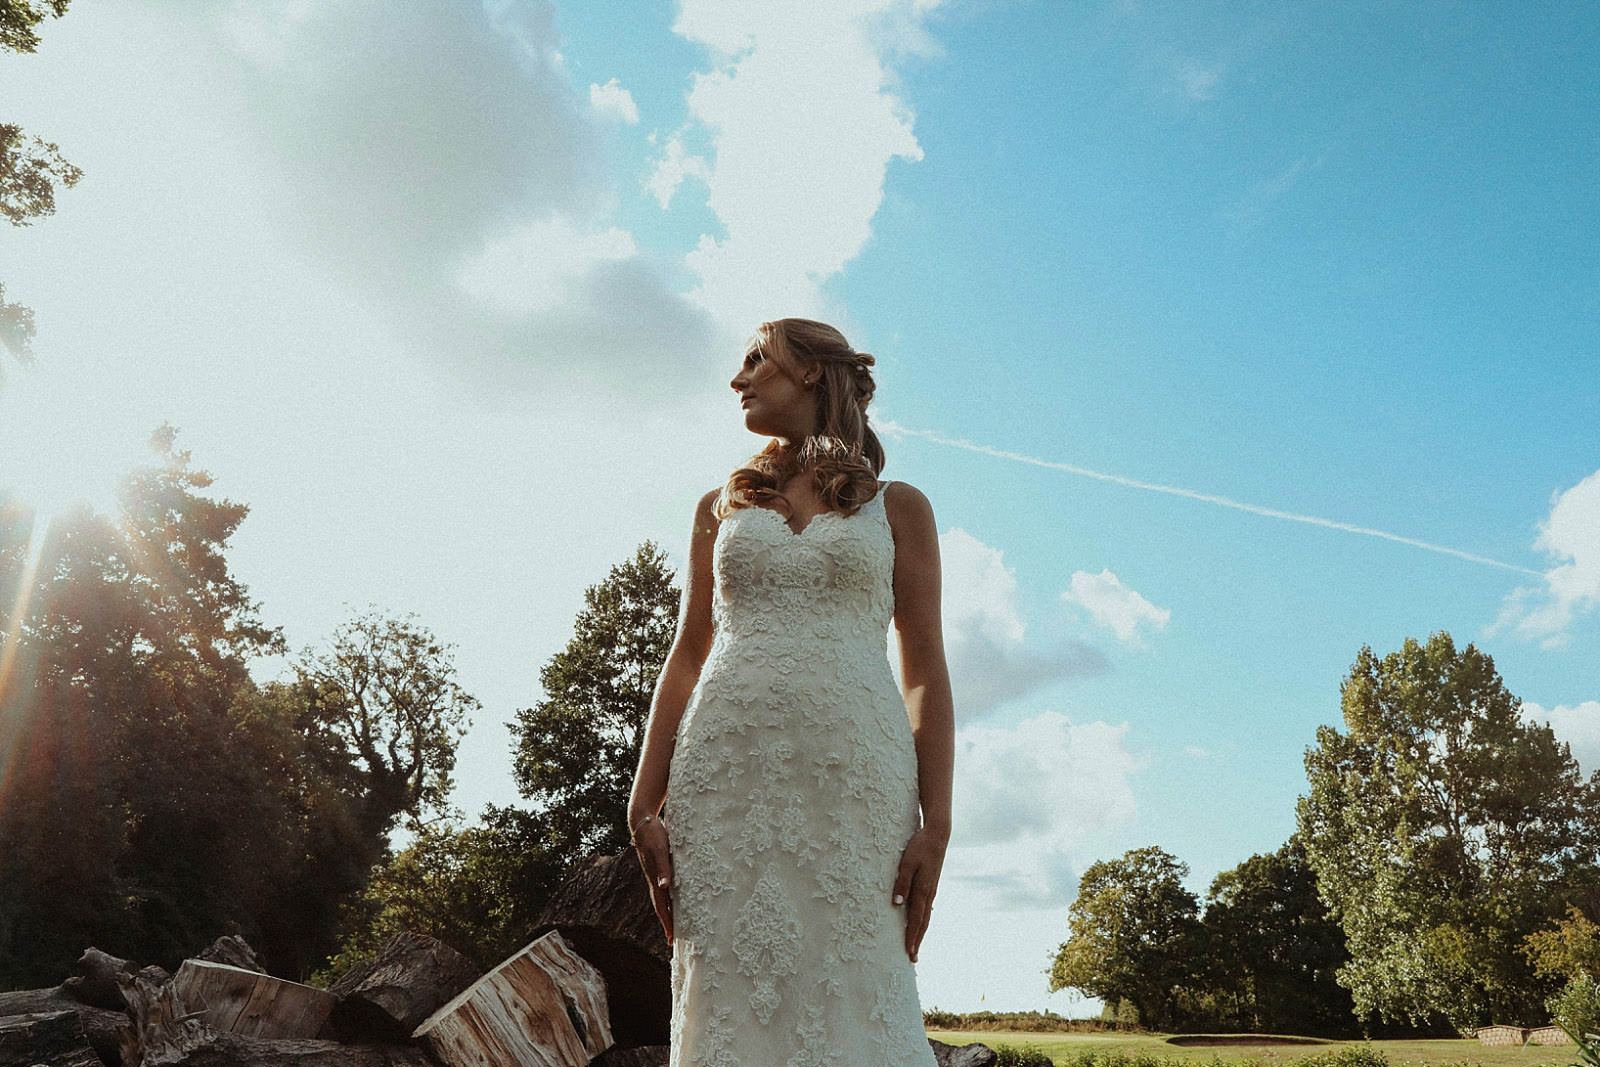 beautiful bride and sky in background